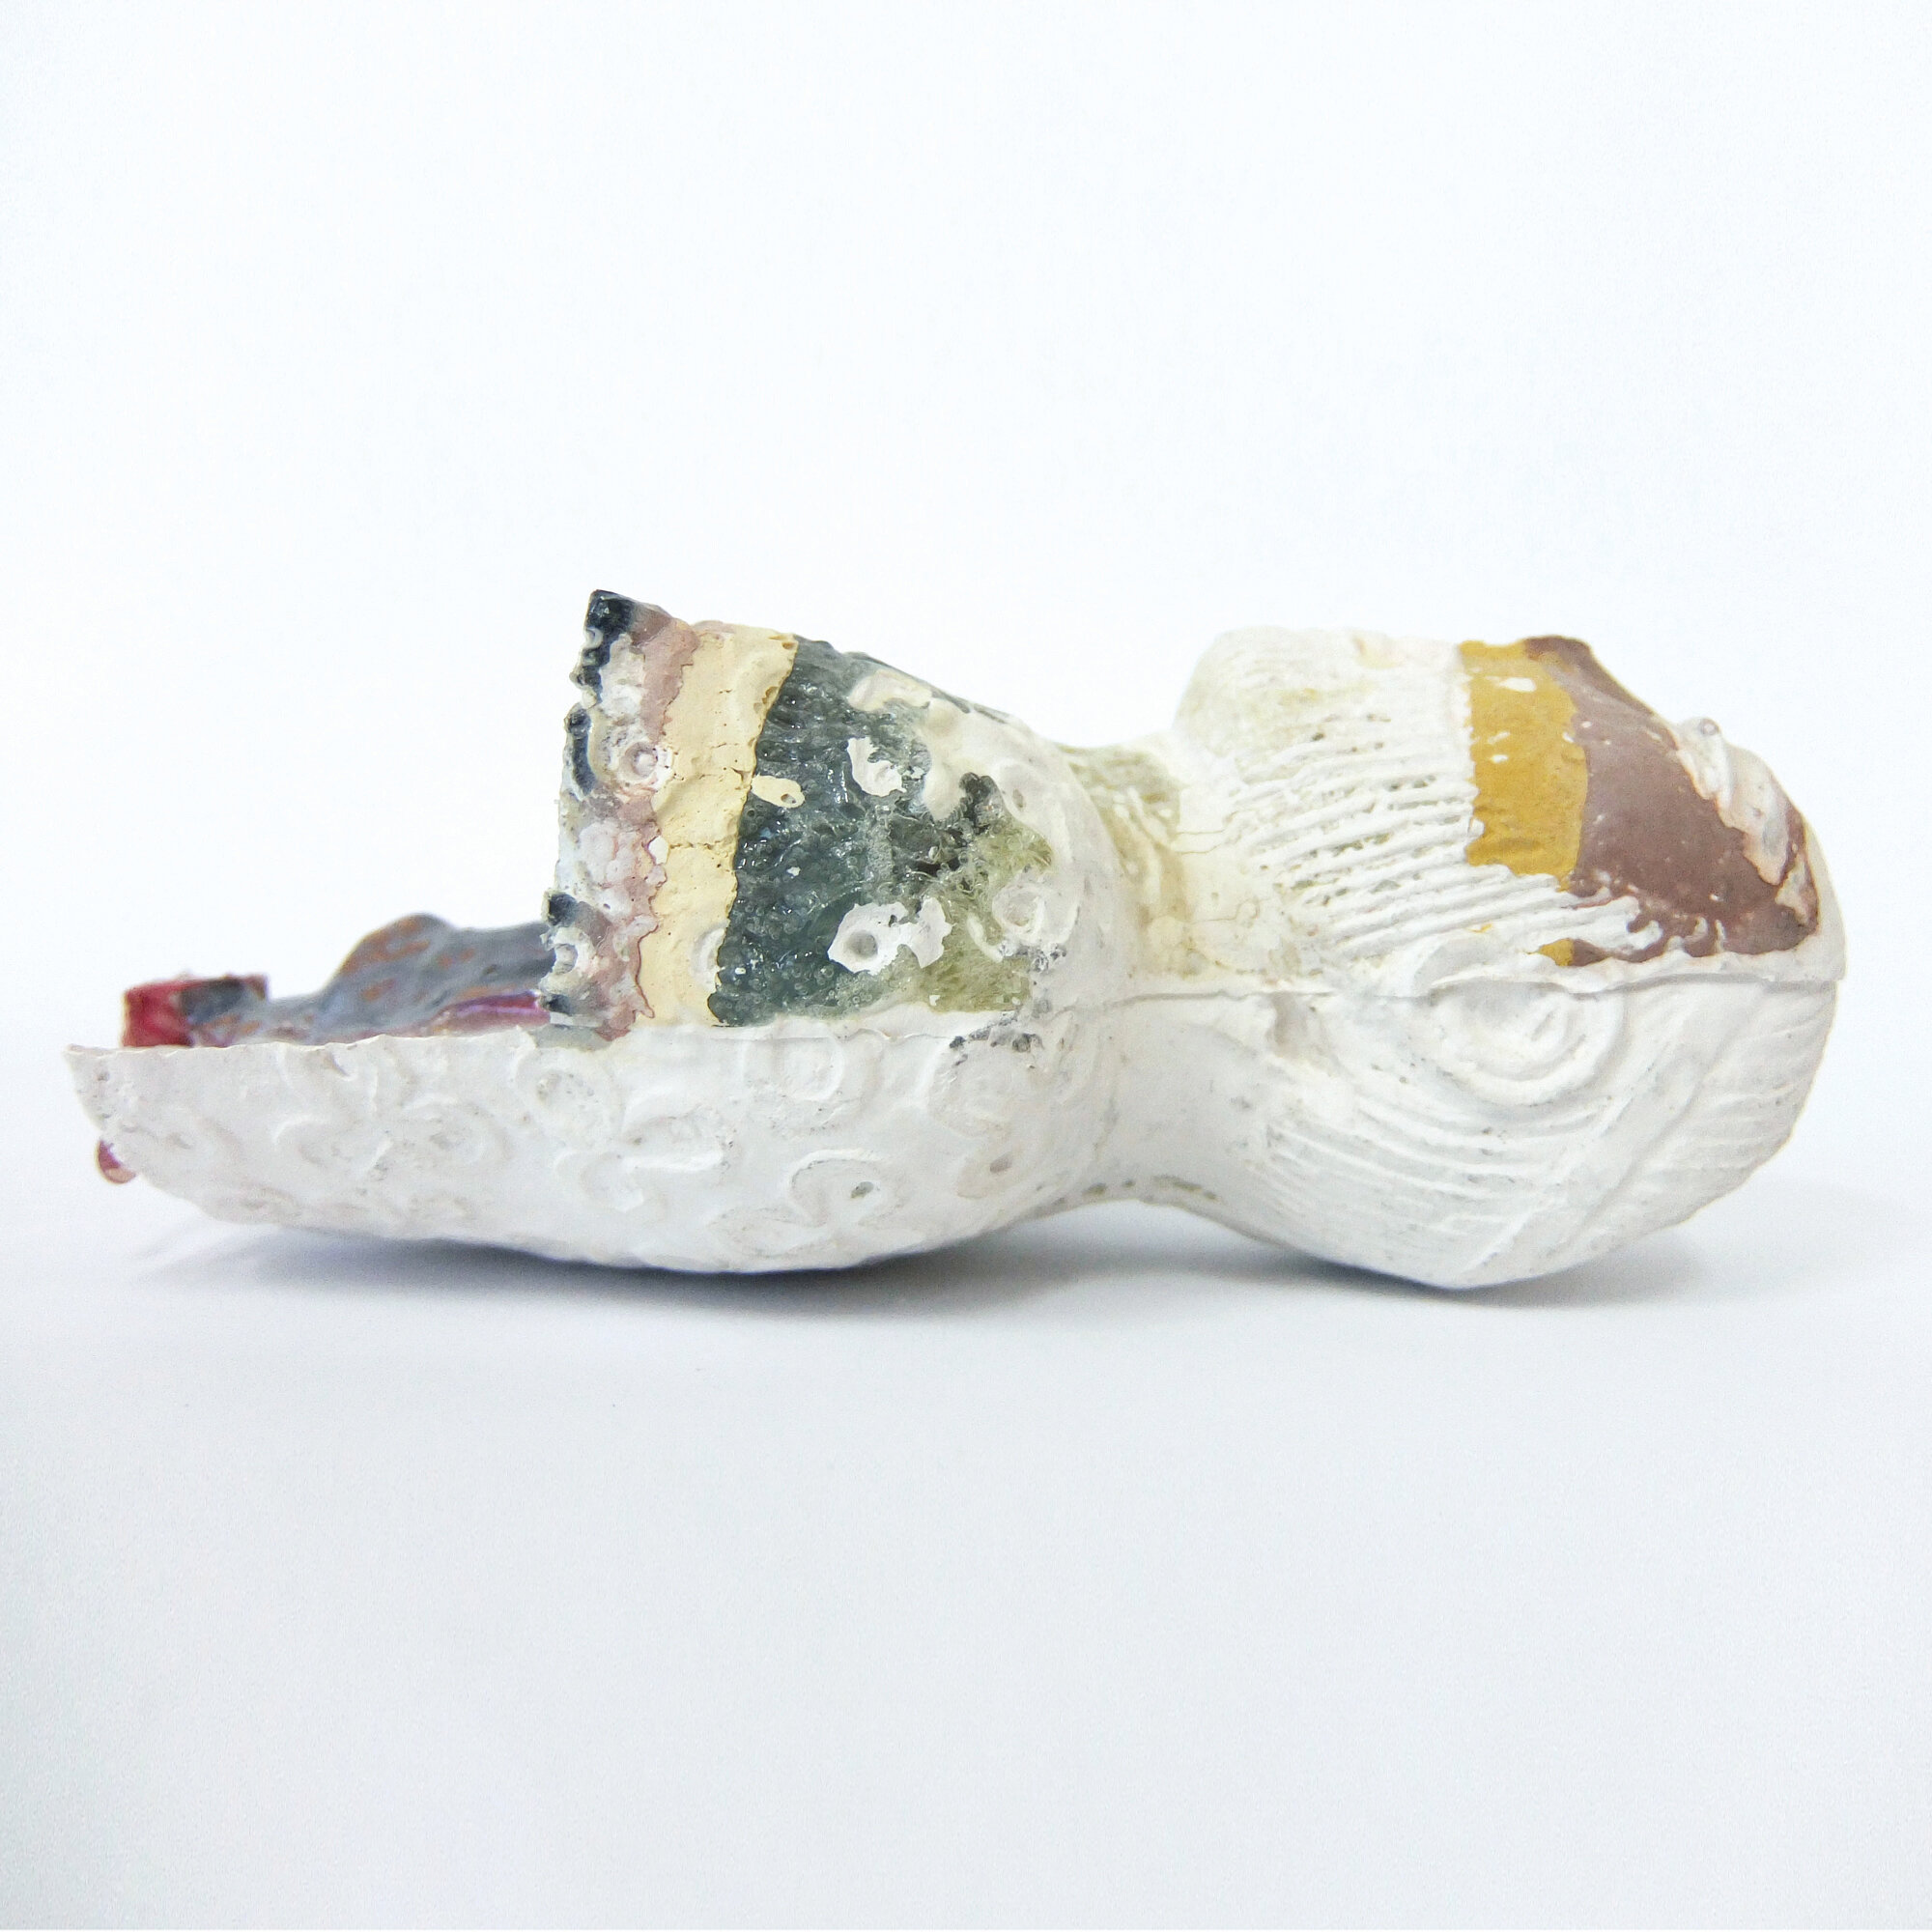 Haseeb Ahmed - Harlan Levey Projects